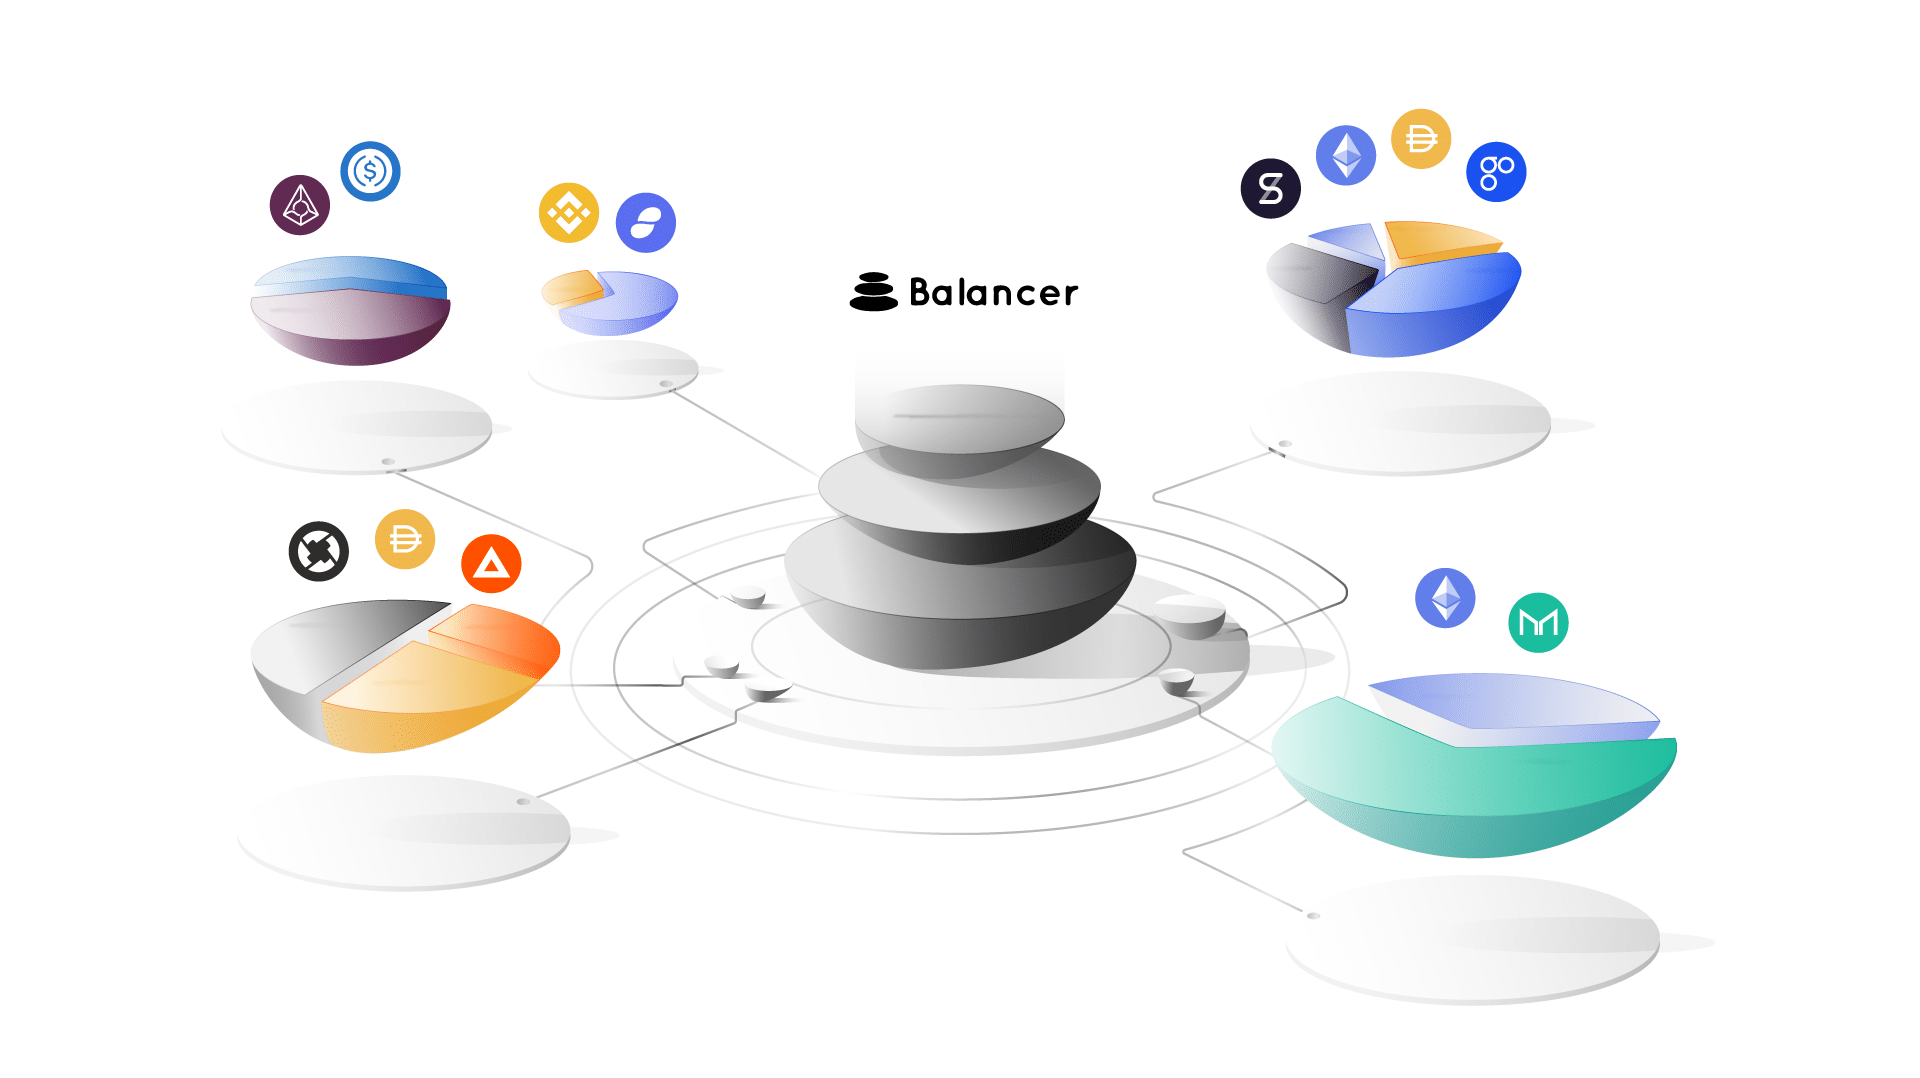 Balancer ready to delist Maker DAO, BAT and dozens of other tokens?